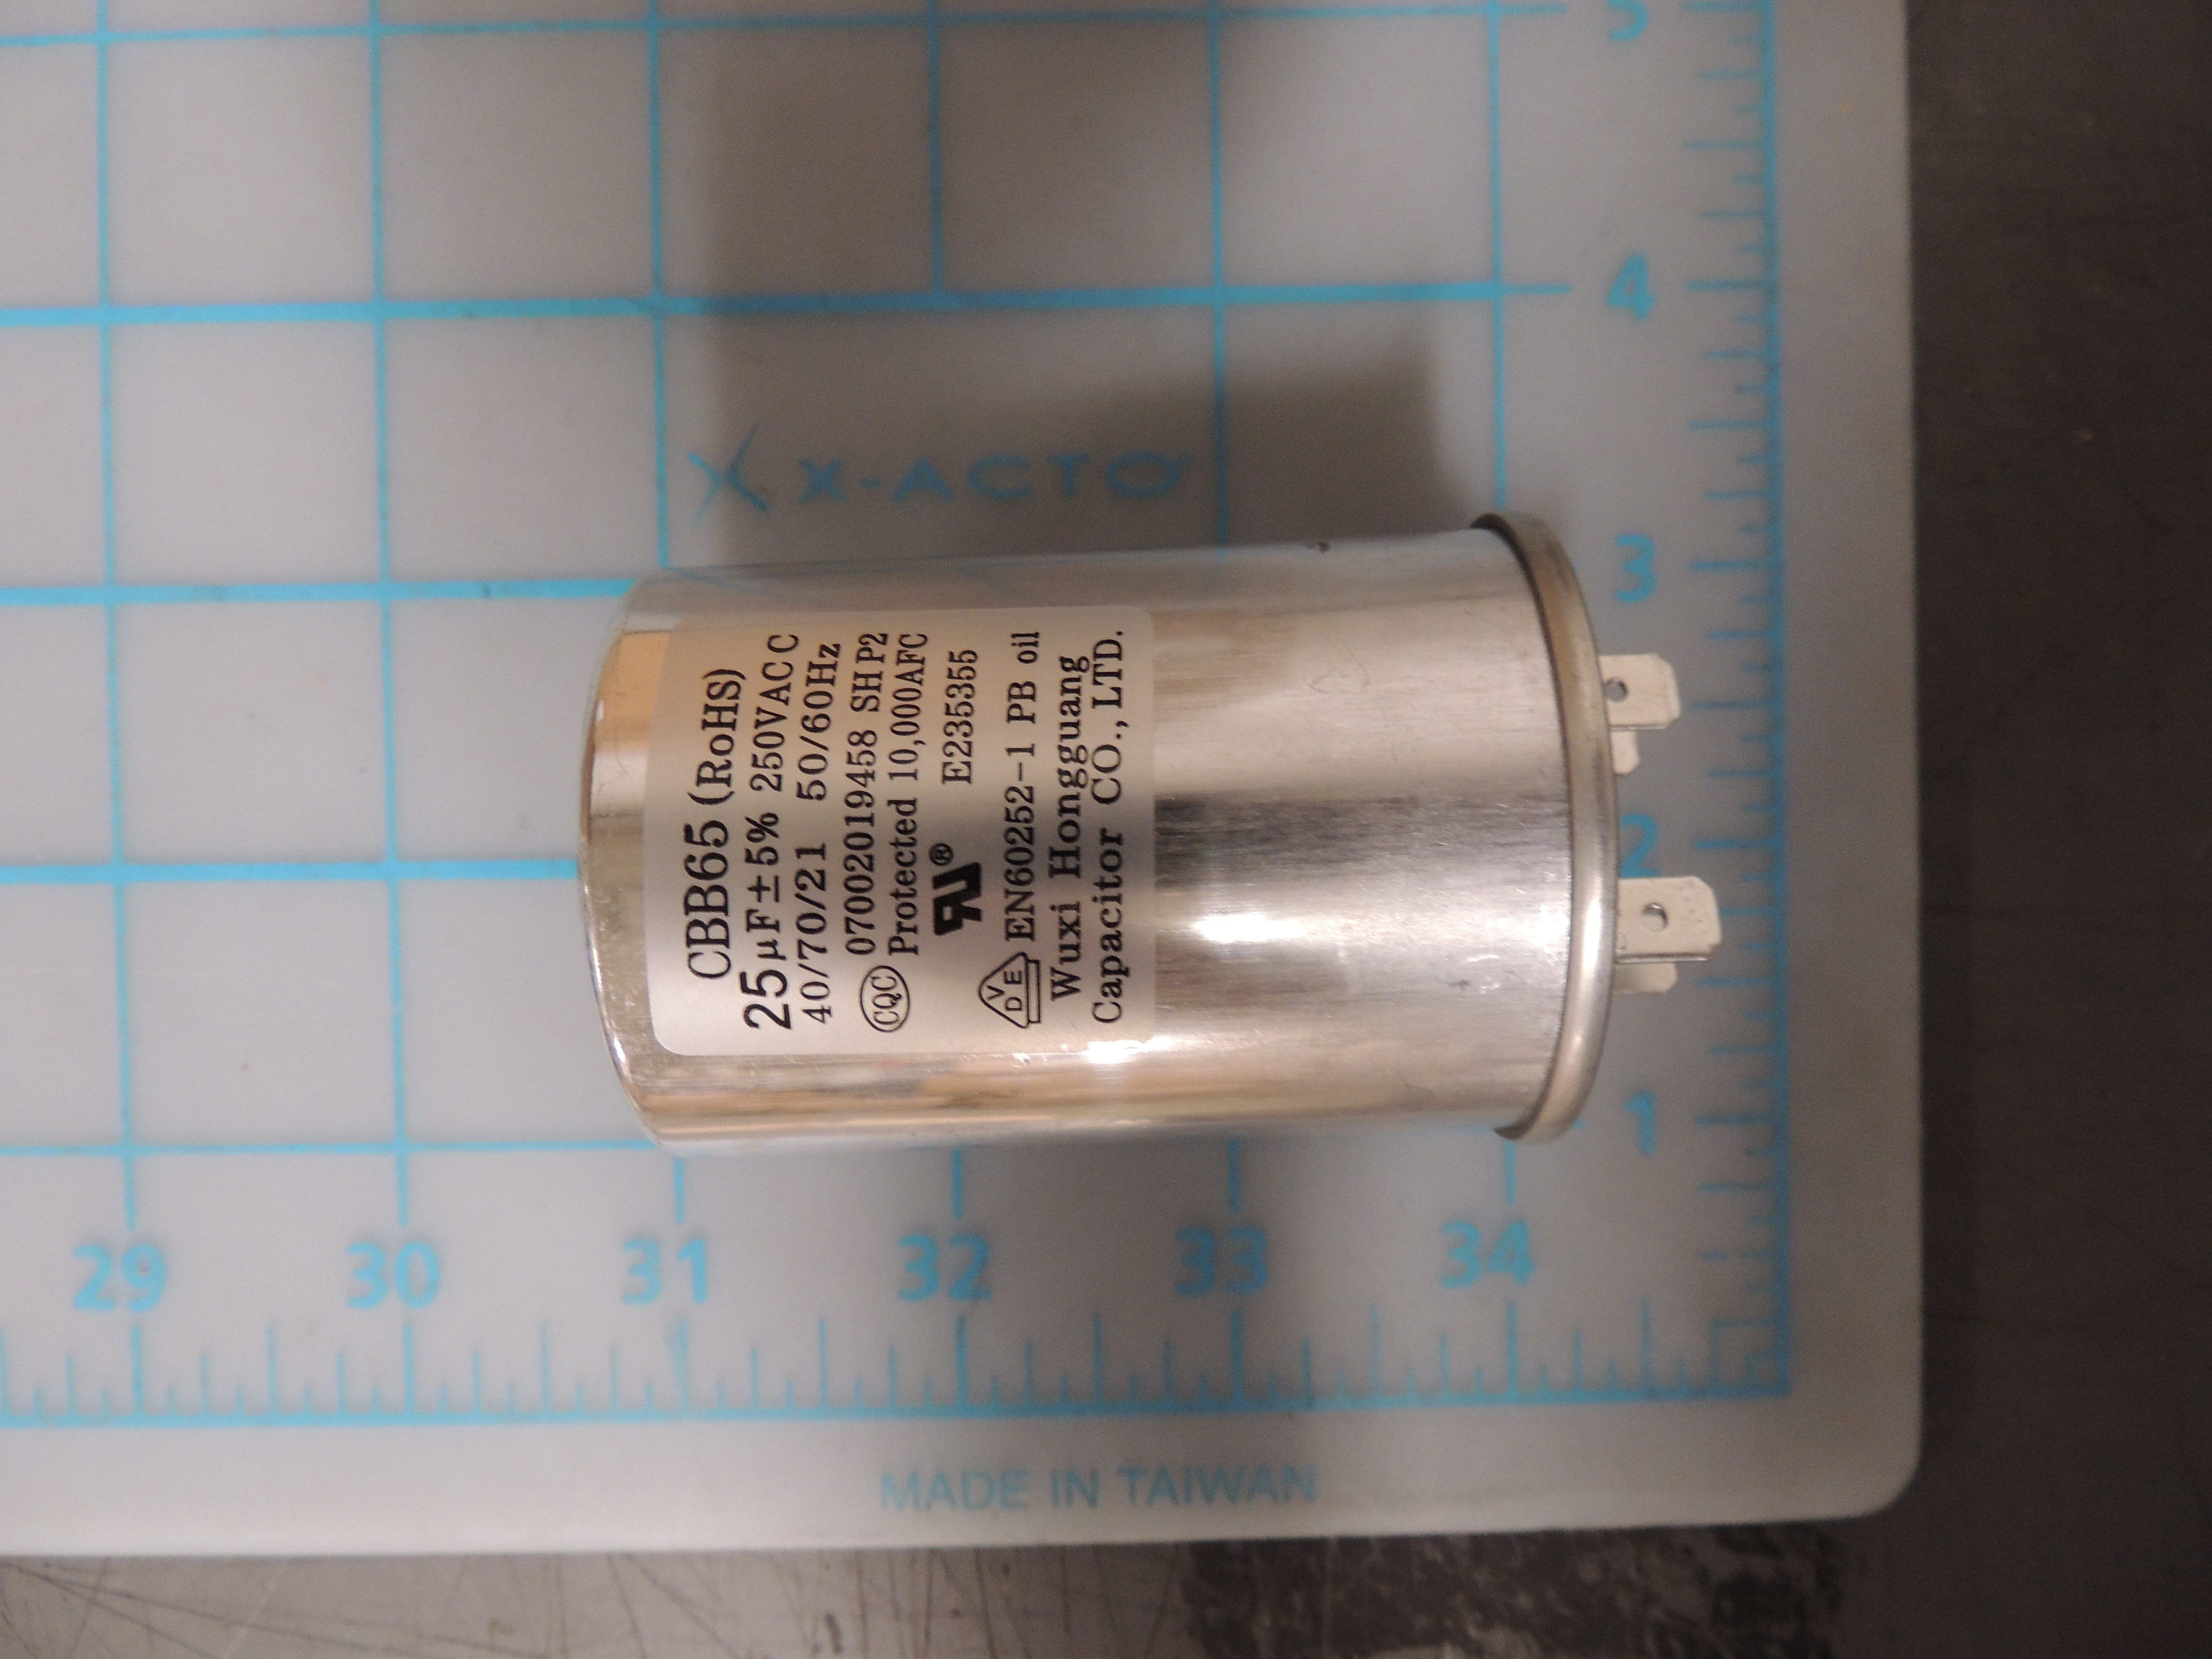 Capacitor of compressor